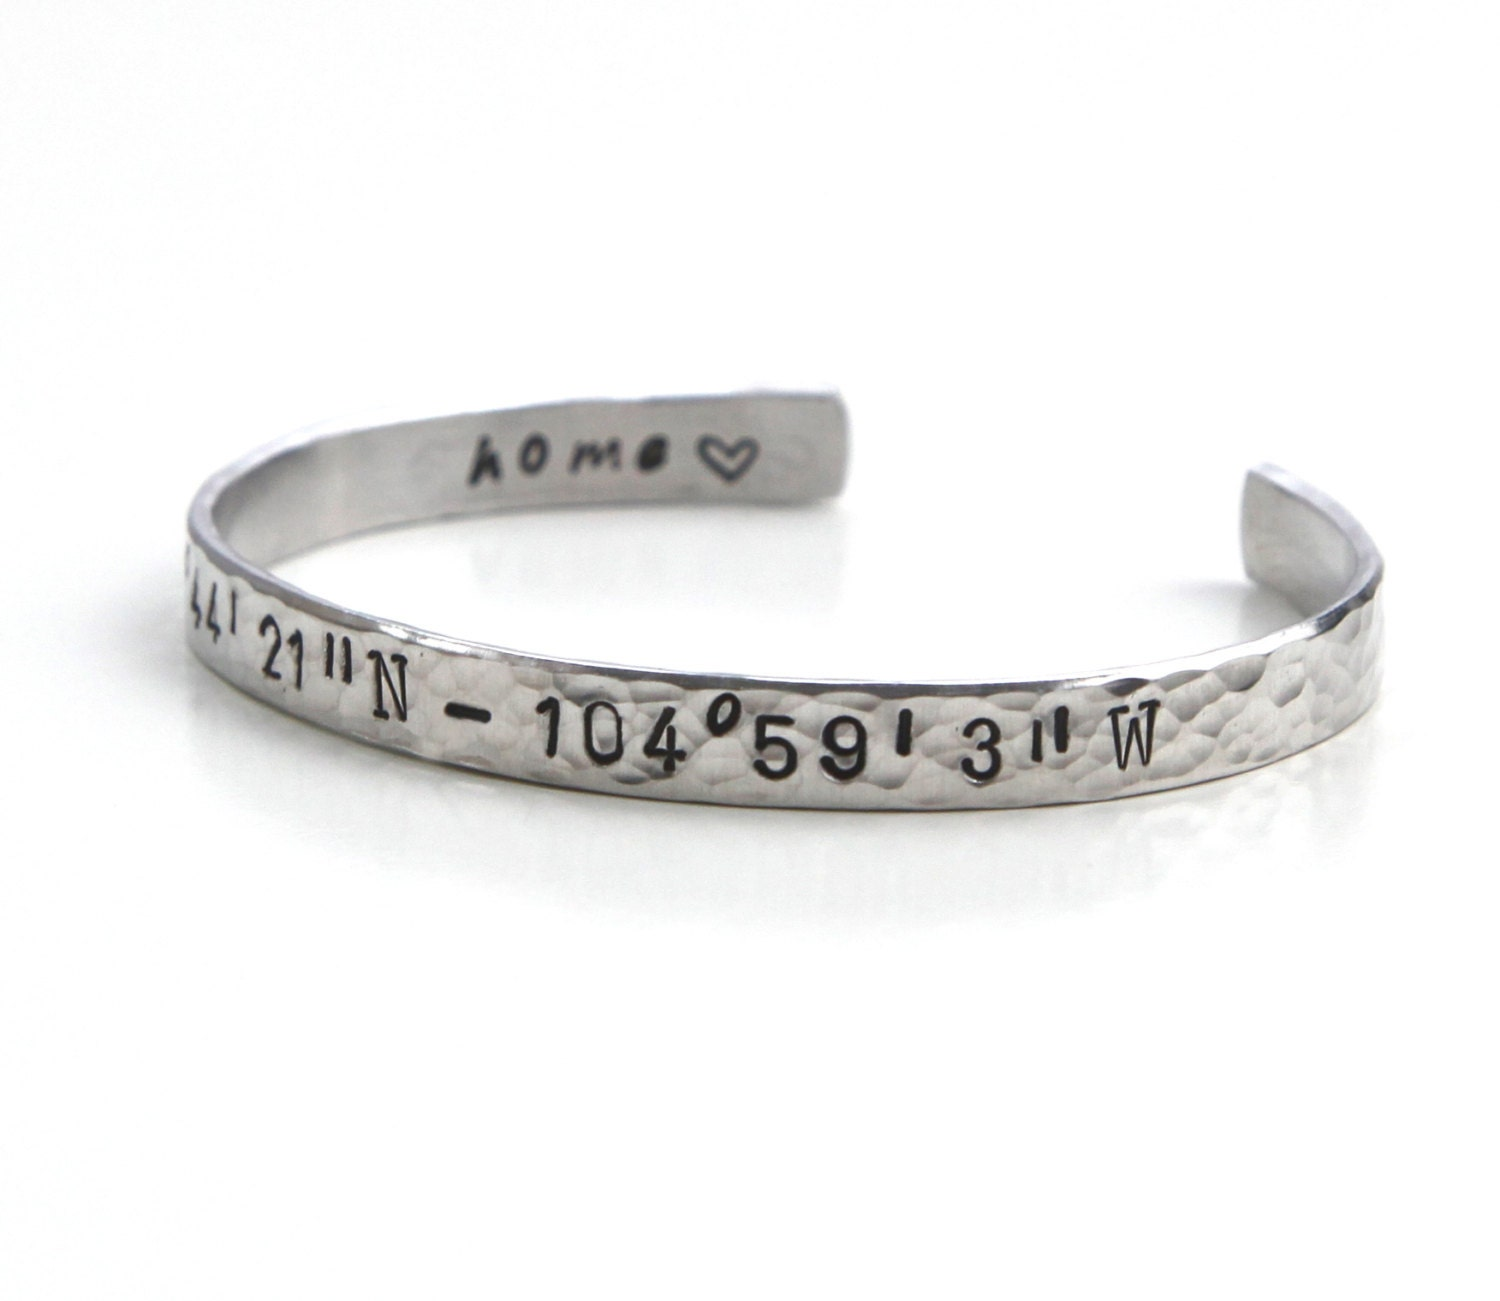 coordinates engraved pin gift bridesmaids sterling etsy on silver by numerals mothers bar roman coordinate bracelet jewelryblues